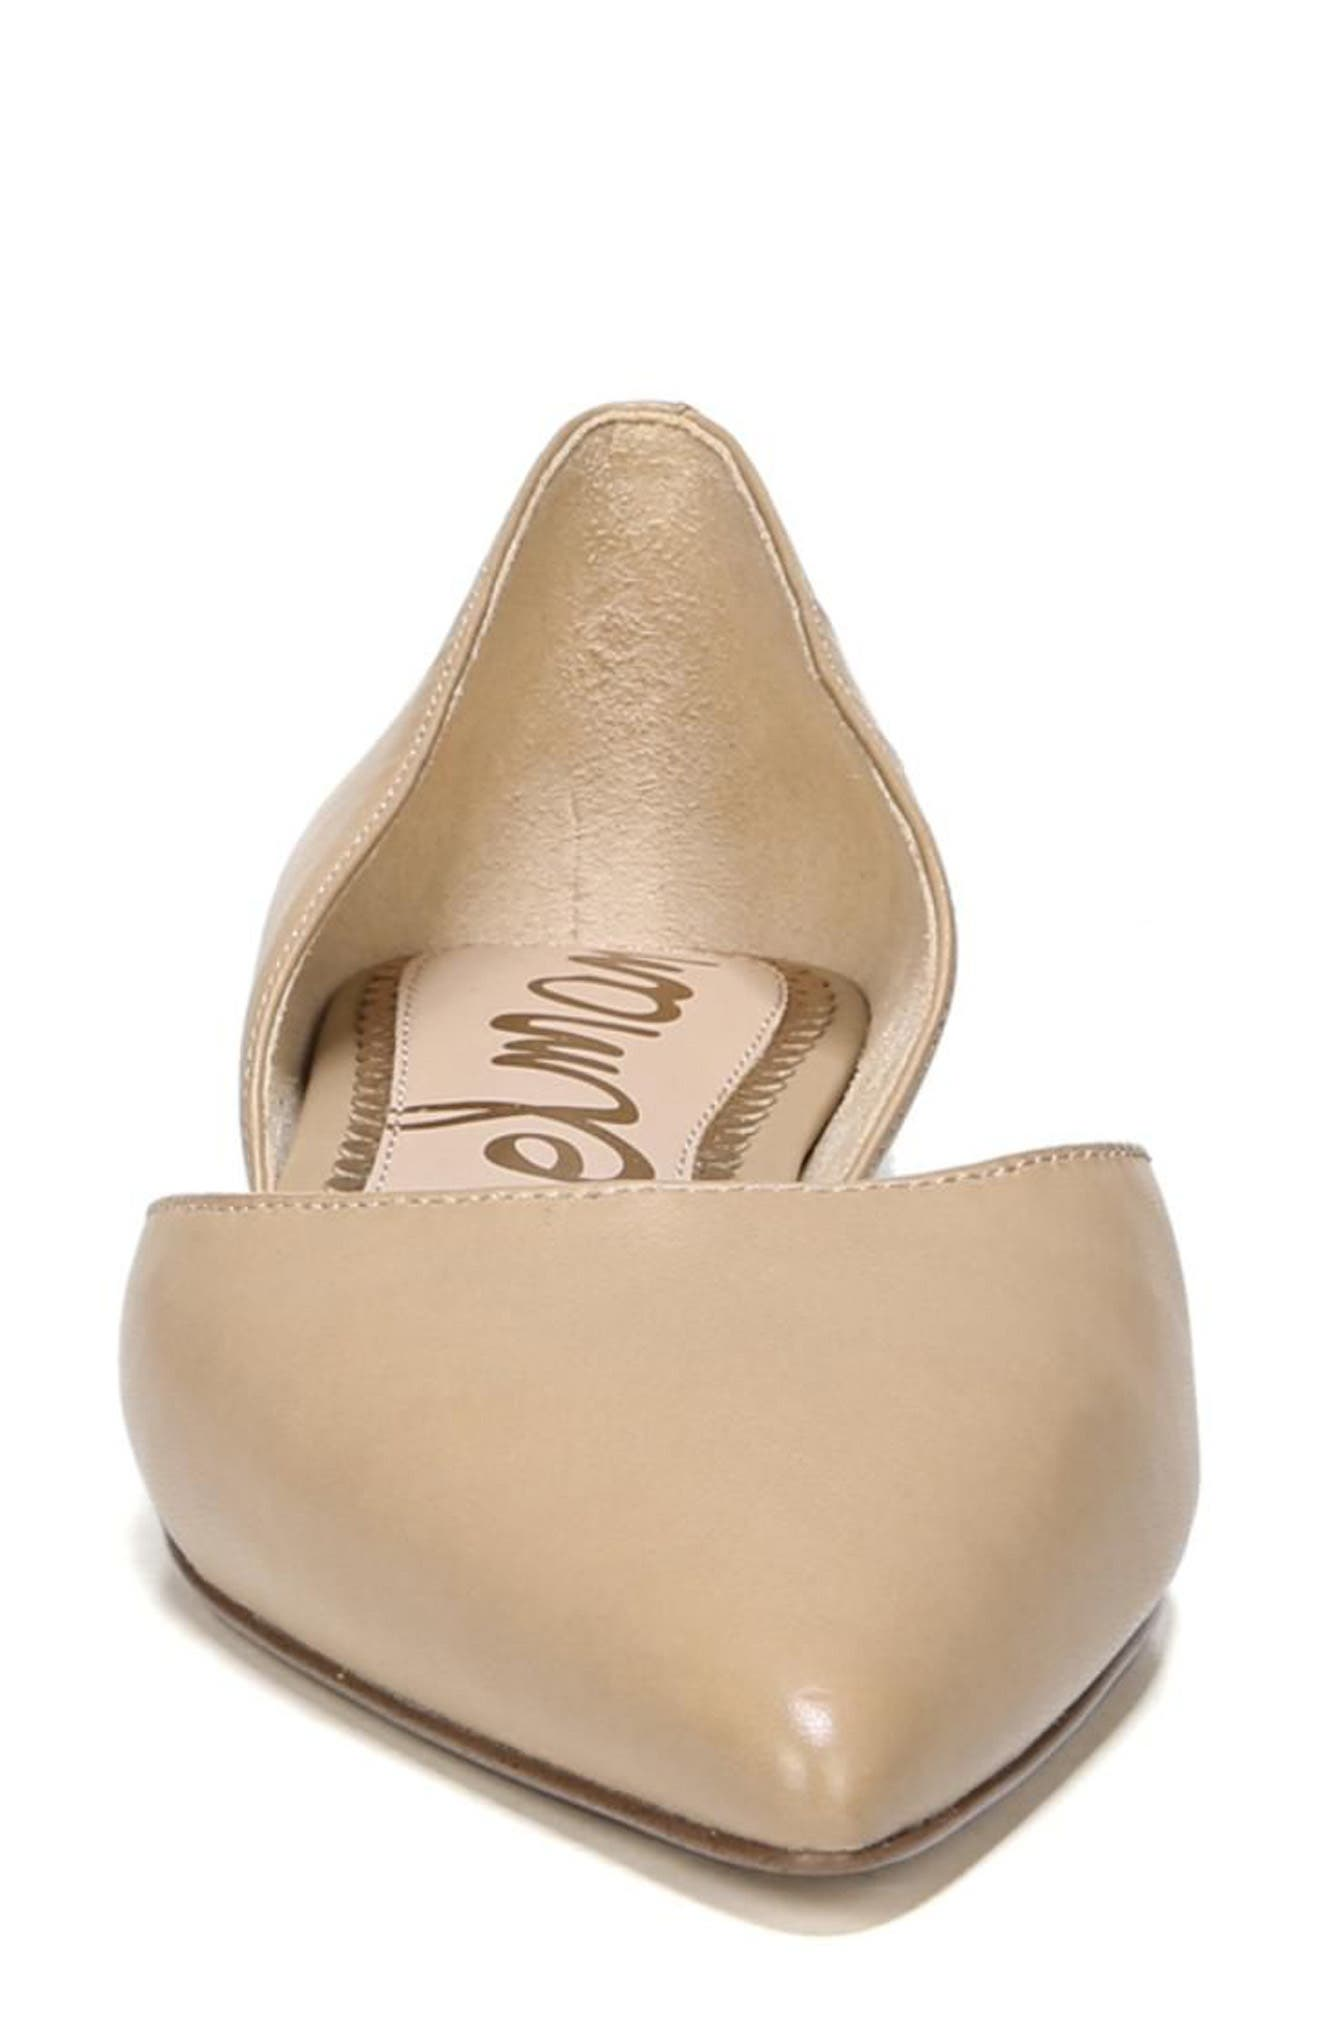 Rodney Pointy Toe d'Orsay Flat,                             Alternate thumbnail 4, color,                             CLASSIC NUDE LEATHER